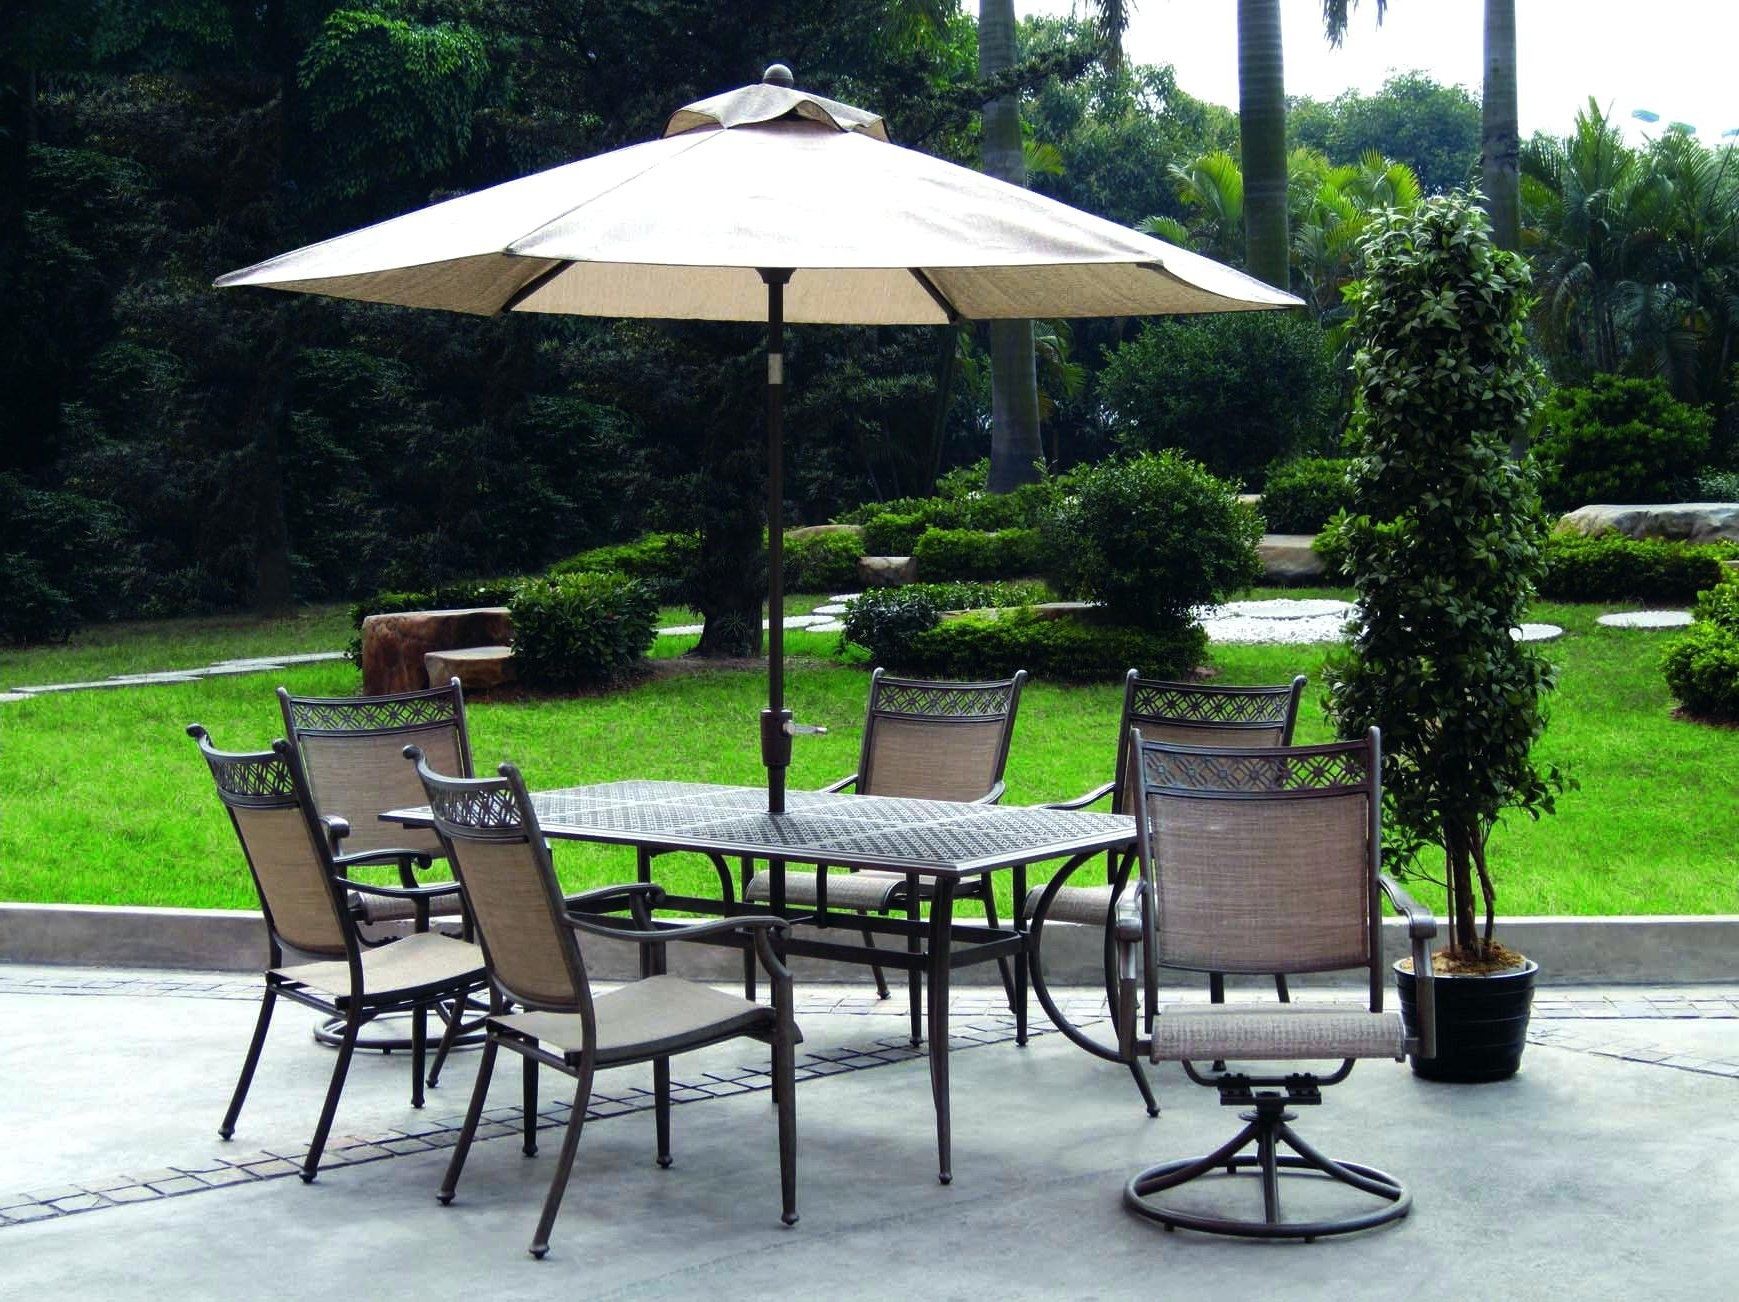 Widely Used Hampton Bay Outdoor Furniture Sets Patio Umbrella Replacement Parts With Hampton Bay Patio Umbrellas (View 20 of 20)